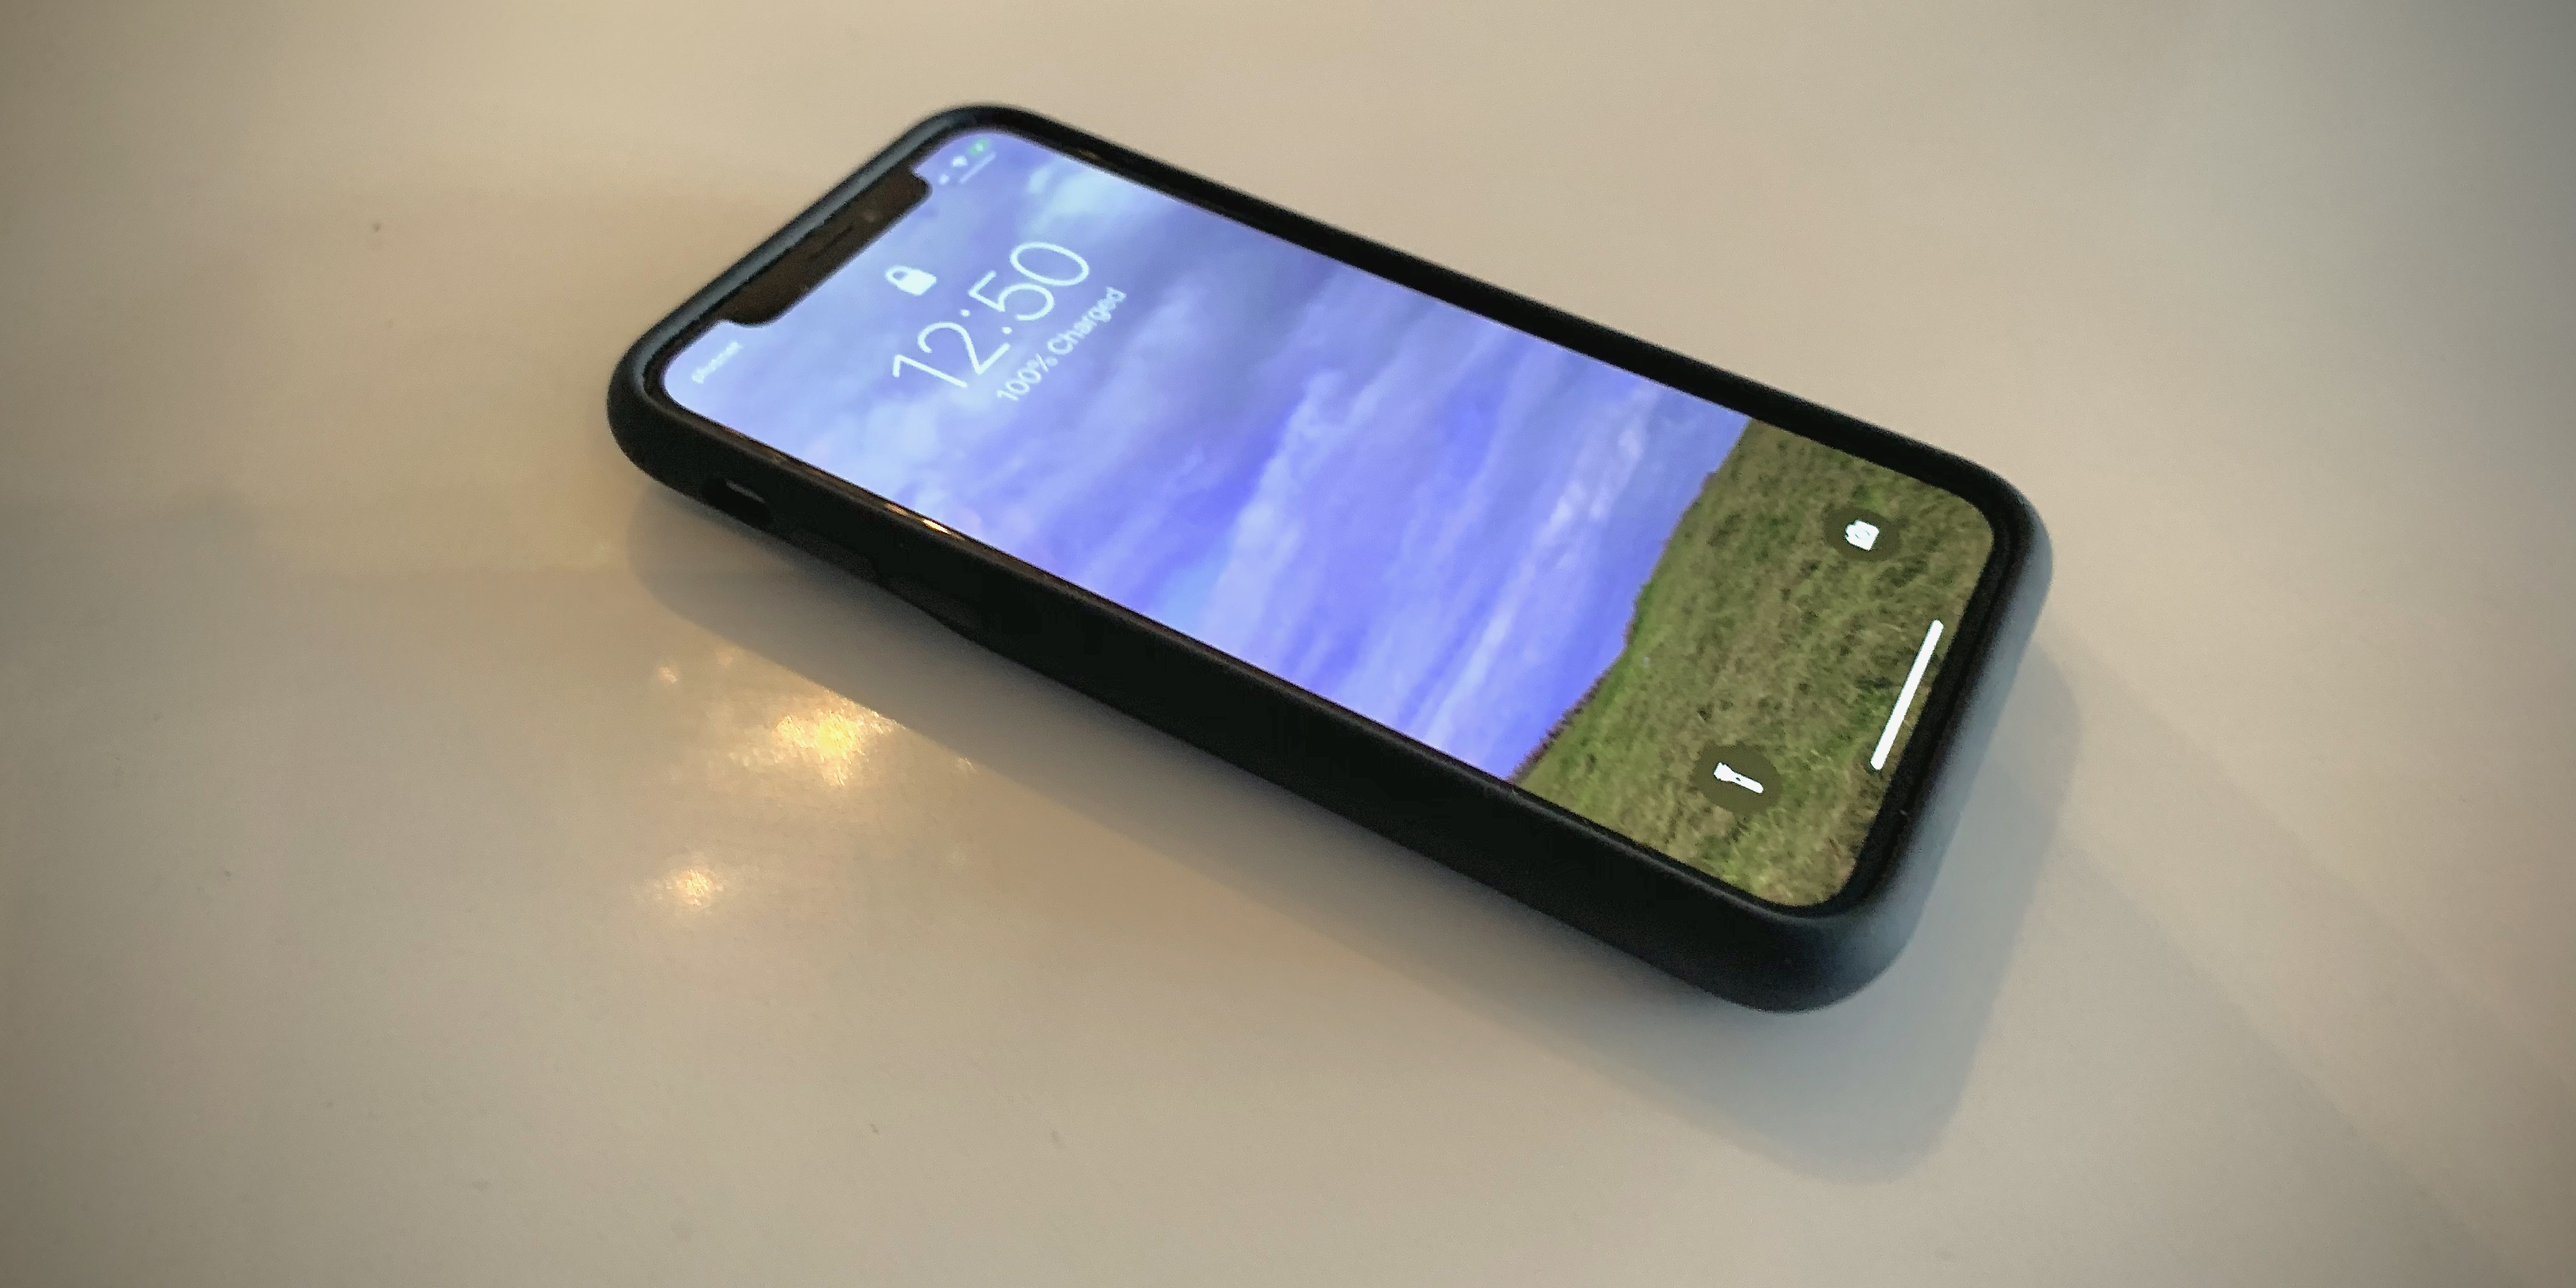 Smart Battery Hands On Using An Iphone Smart Battery Case For The First Time